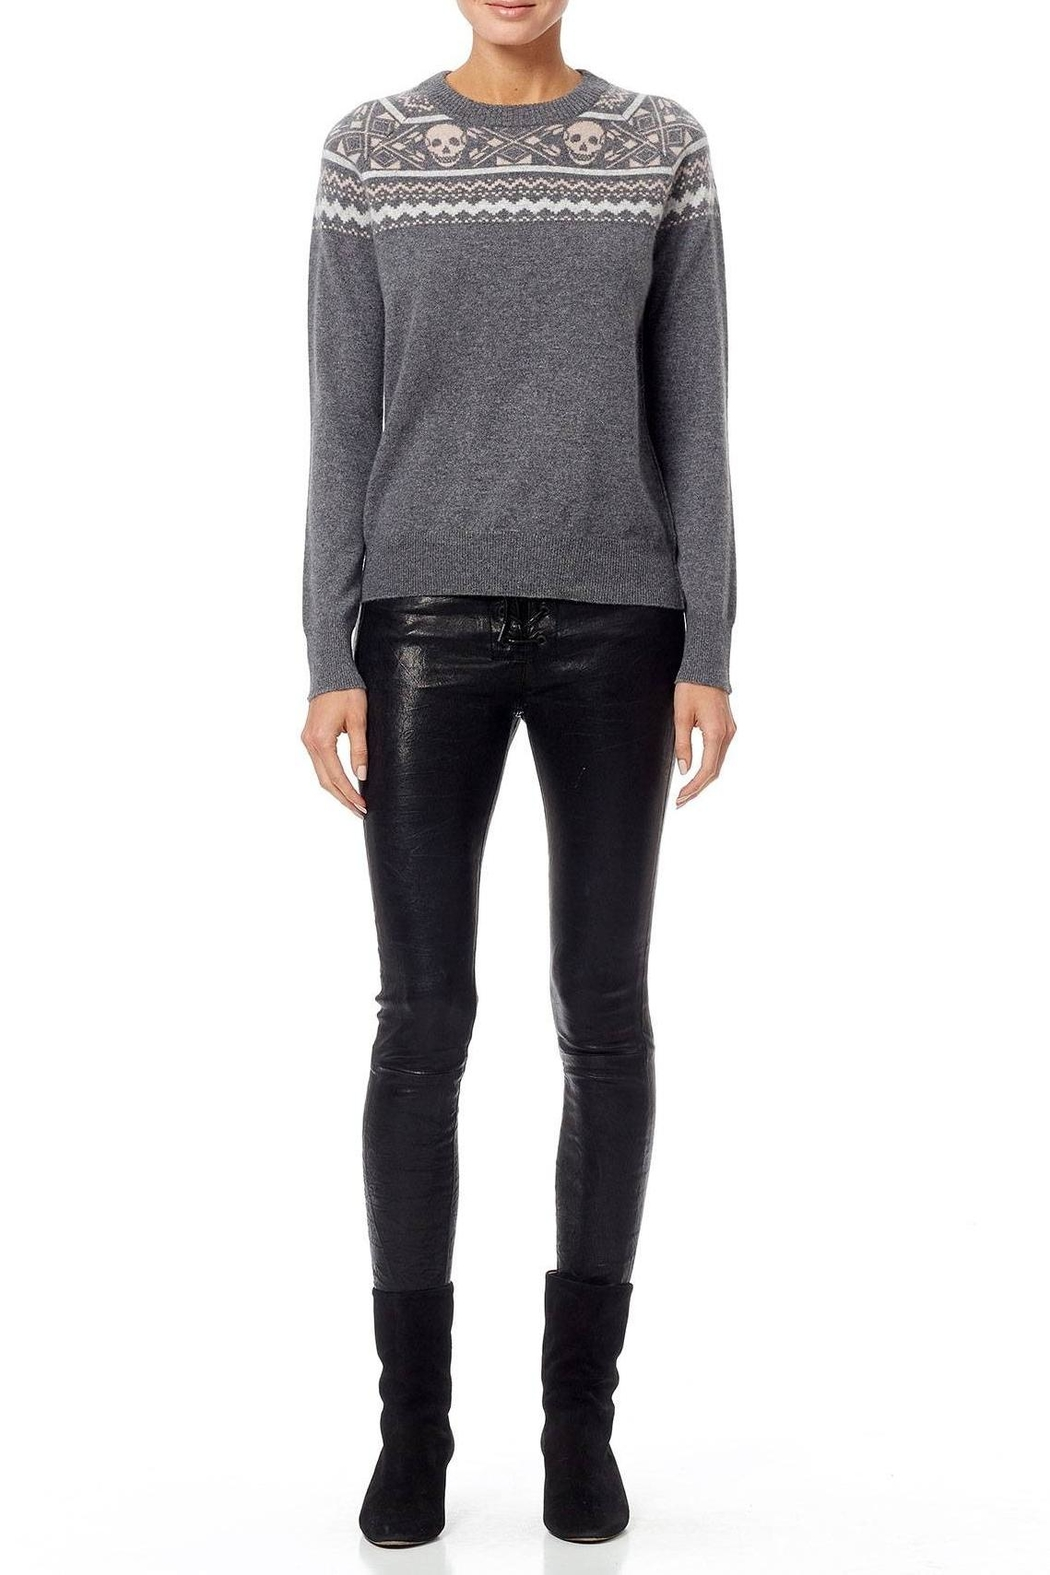 Skull Cashmere Cashmere Miley Sweater - Back Cropped Image